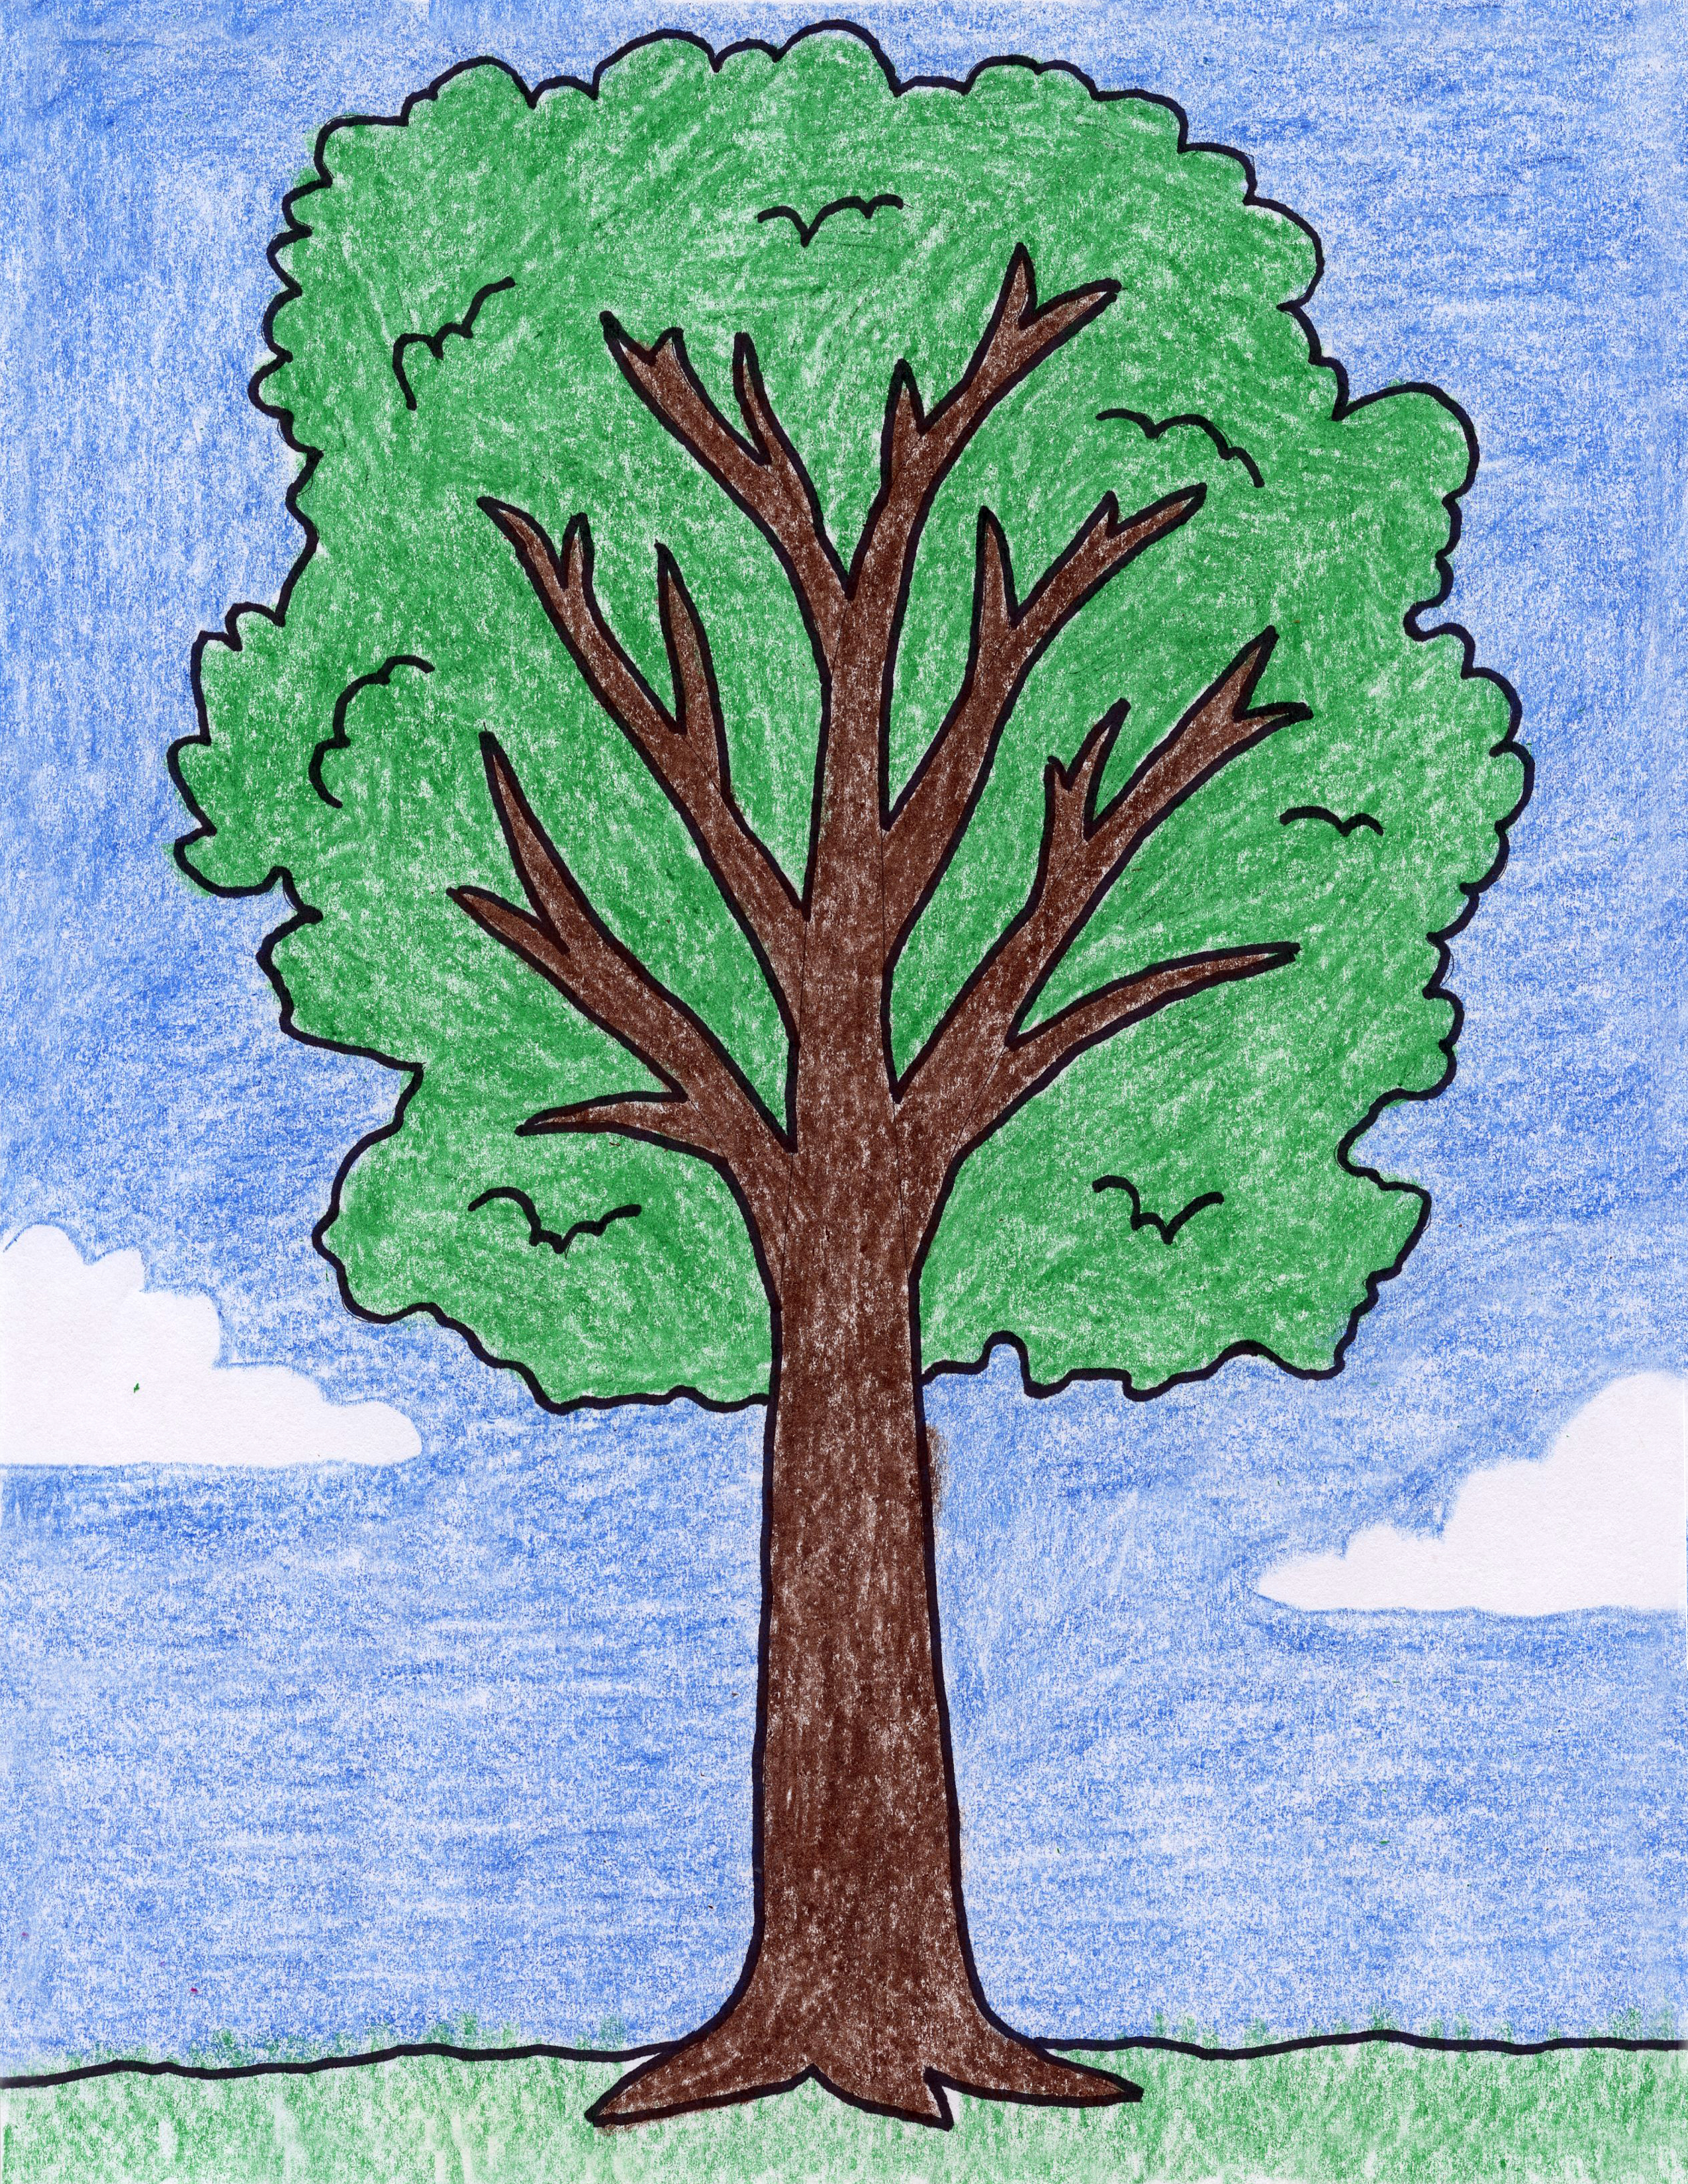 Picture Of A Tree Drawing at GetDrawings.com | Free for personal use ...